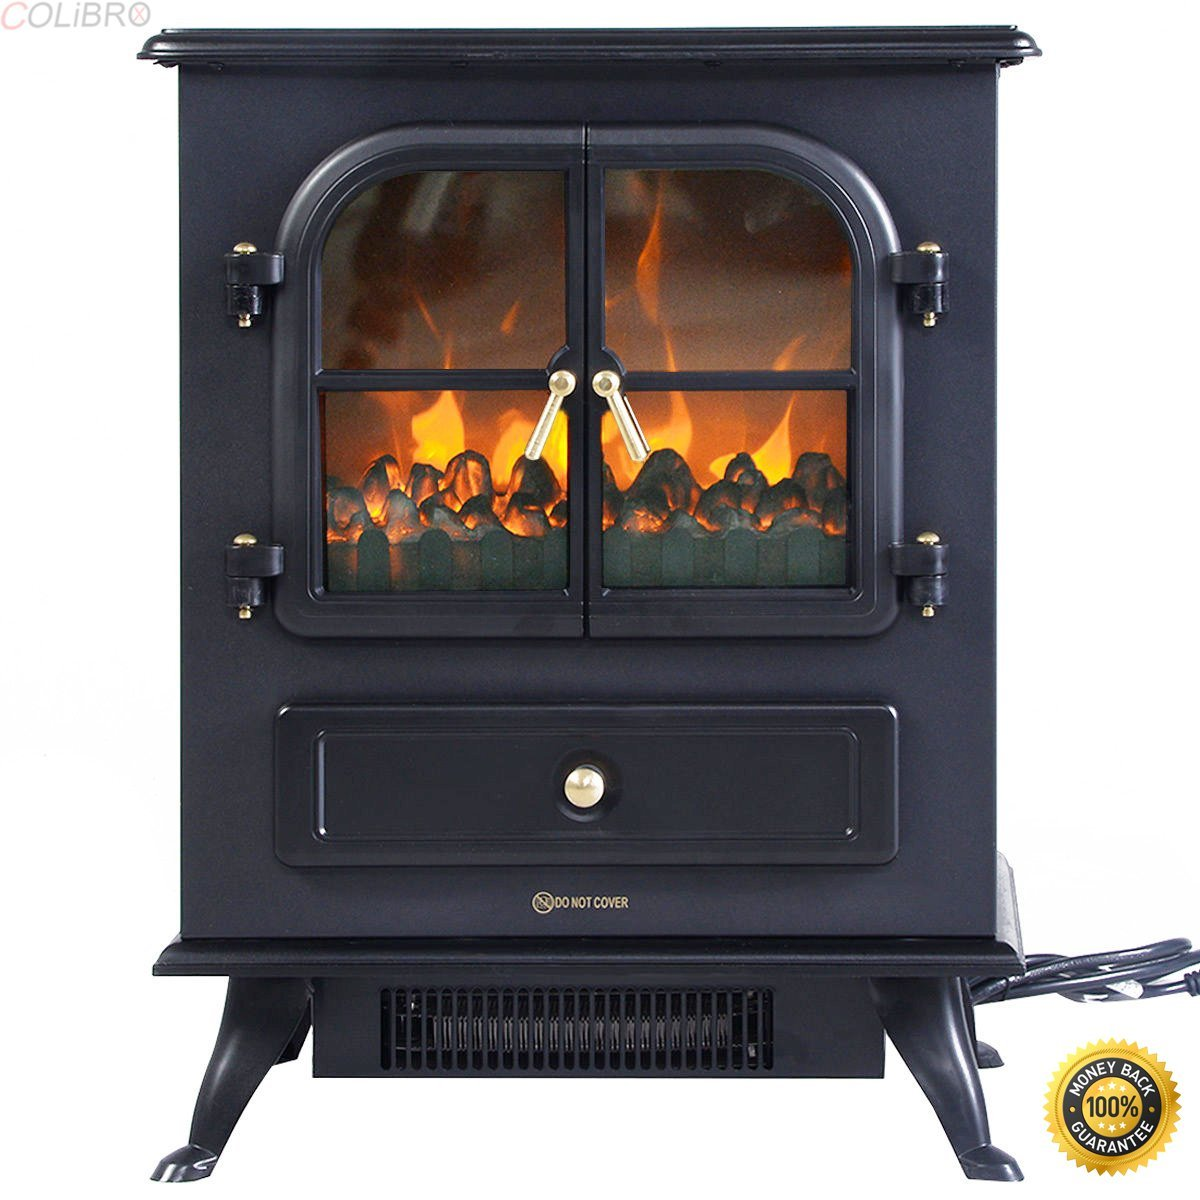 COLIBROX--Free Standing Electric 1500W Fireplace Heater Fire Flame Stove Wood Adjustable,fireplace design ideas,home depot fireplaces ,electric fireplaces clearance home depot,electric fireplaces